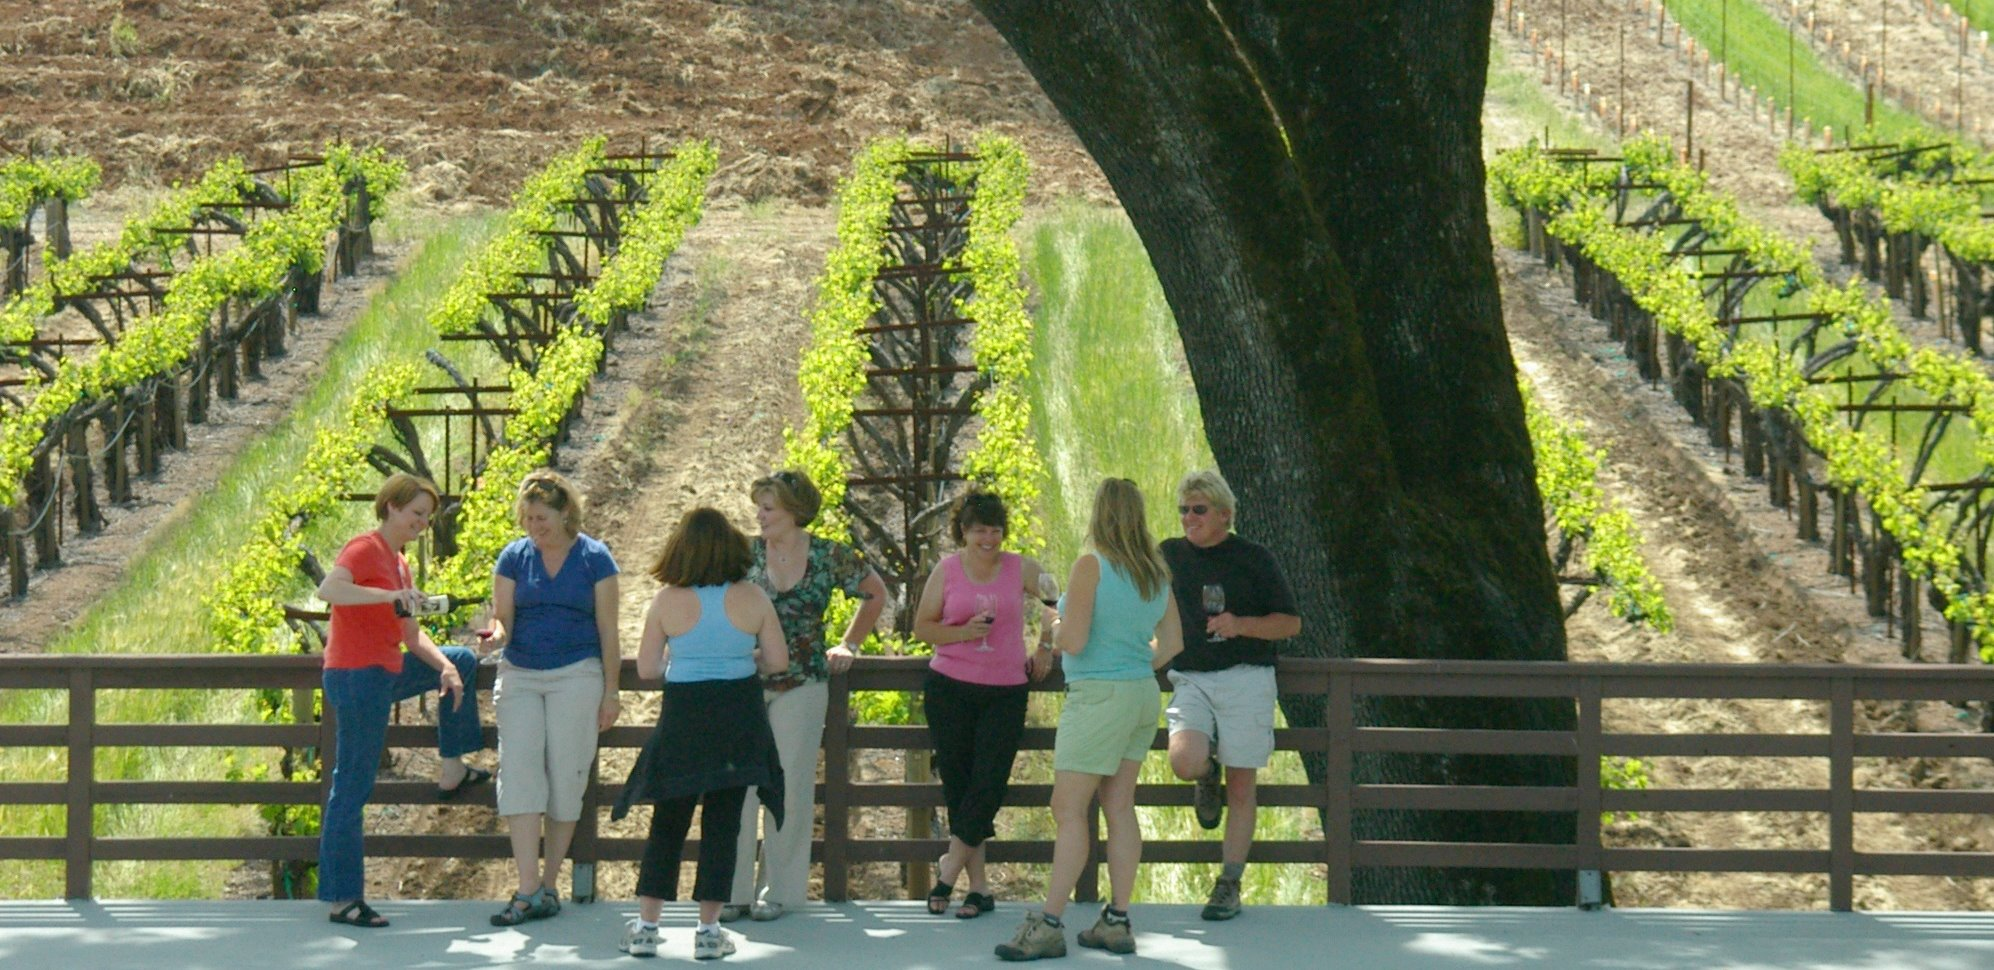 Group of people enjoying wine tasting in vineyard in Sonoma